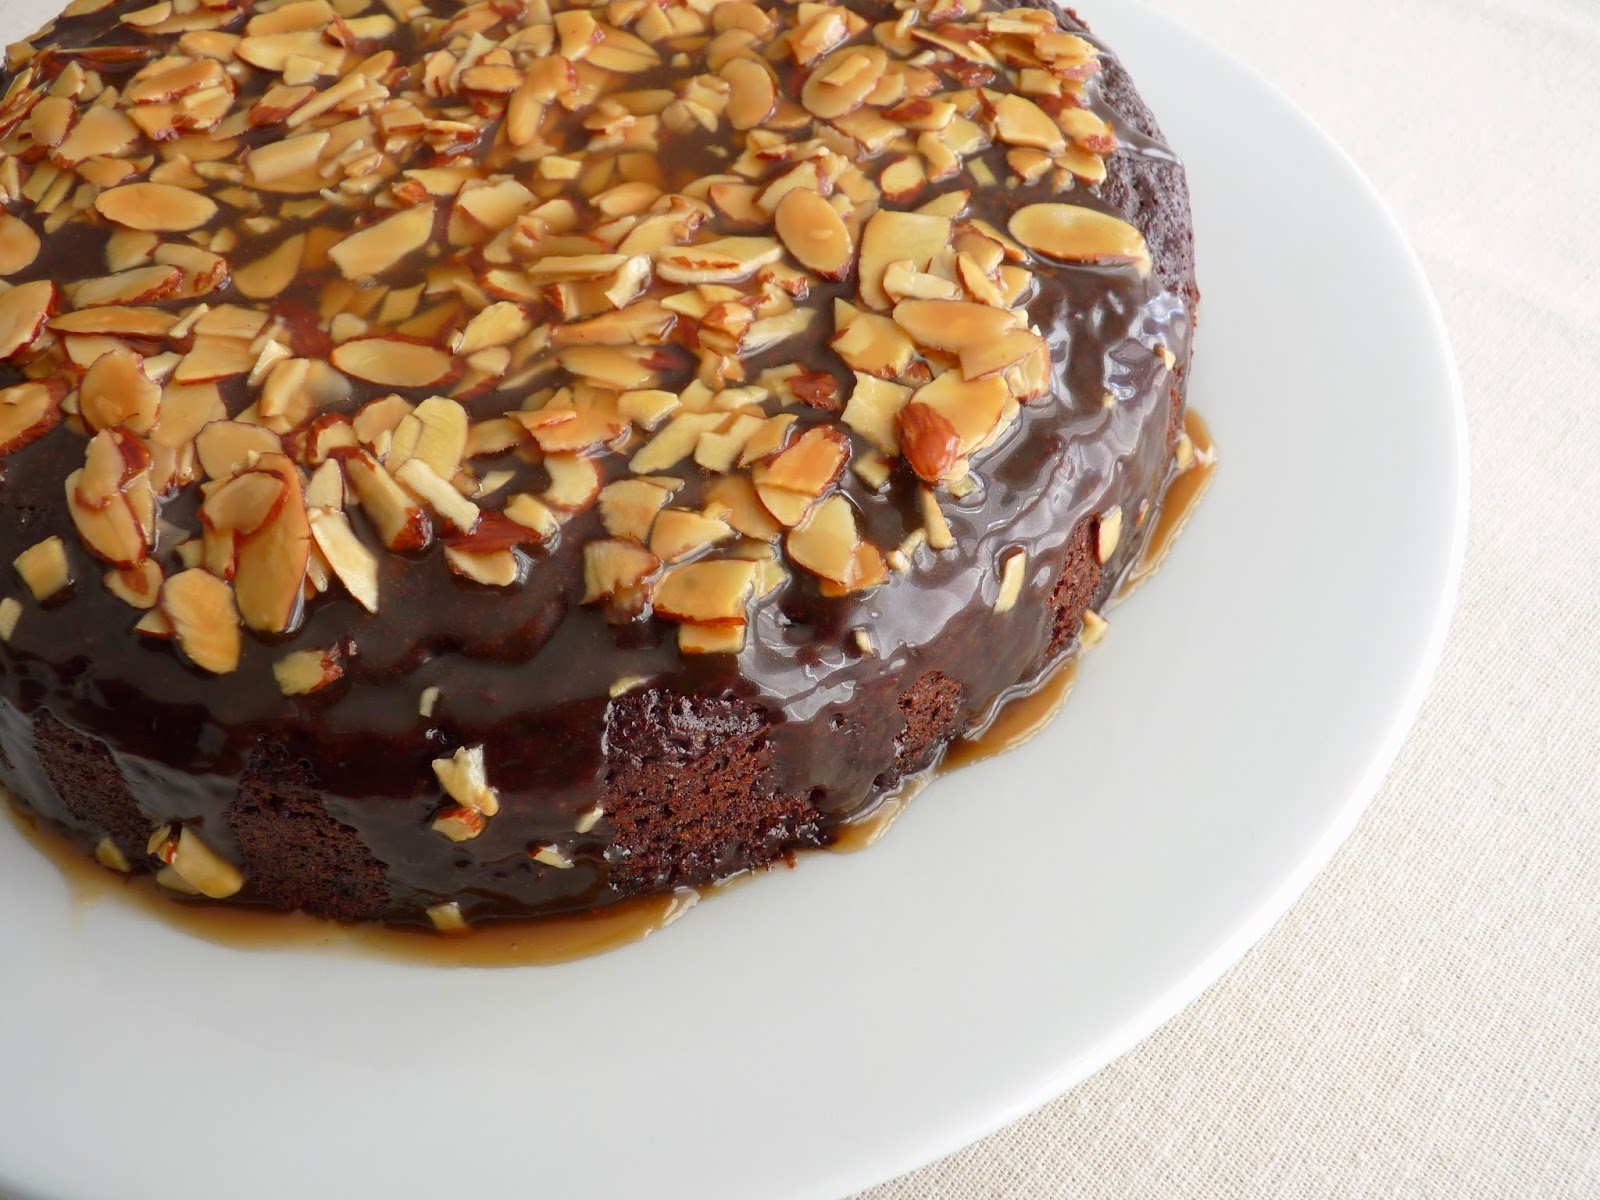 :pastry studio: Chocolate Almond Toffee Cake